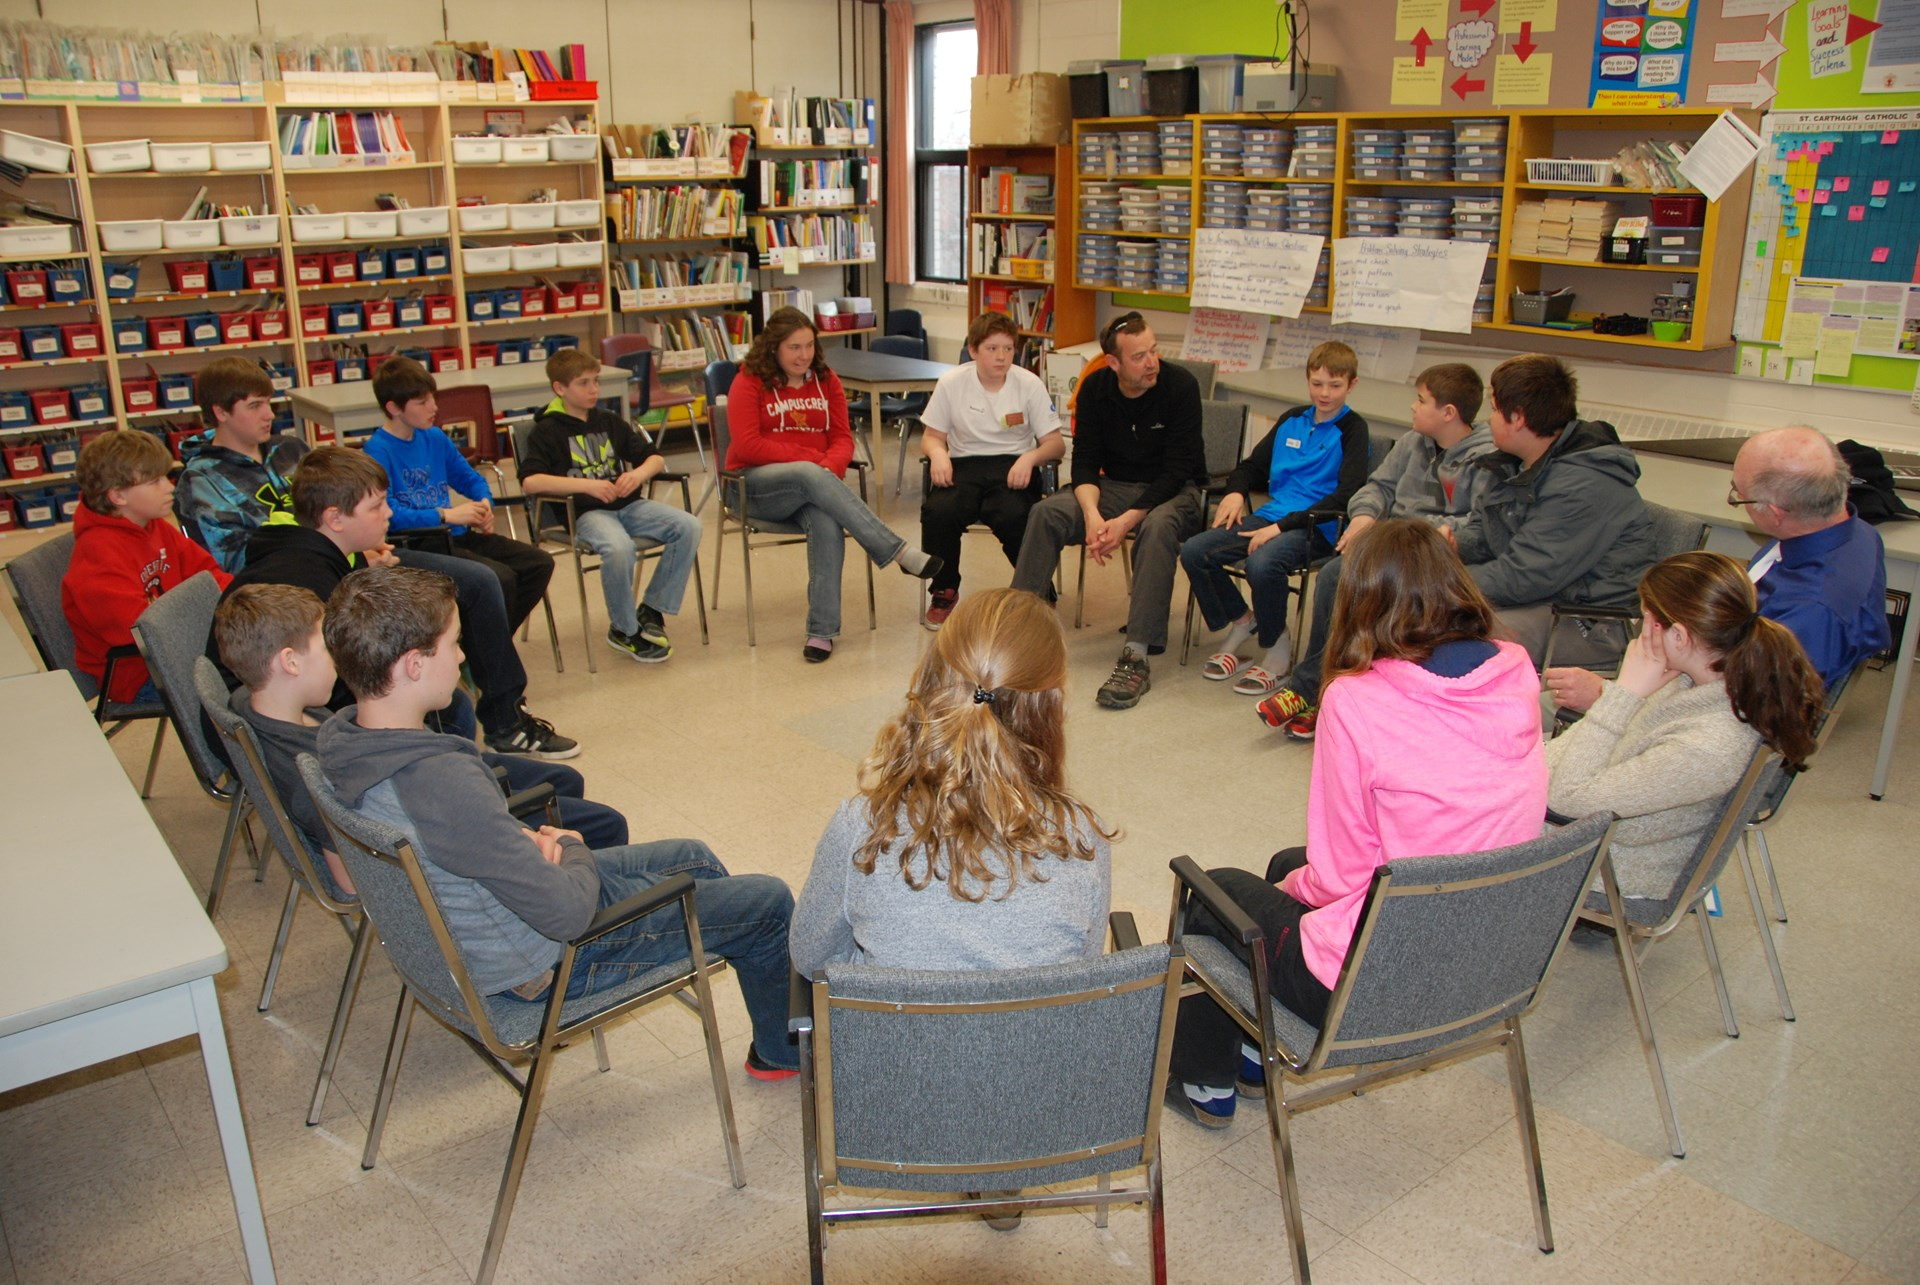 Students in circle for restorative practice